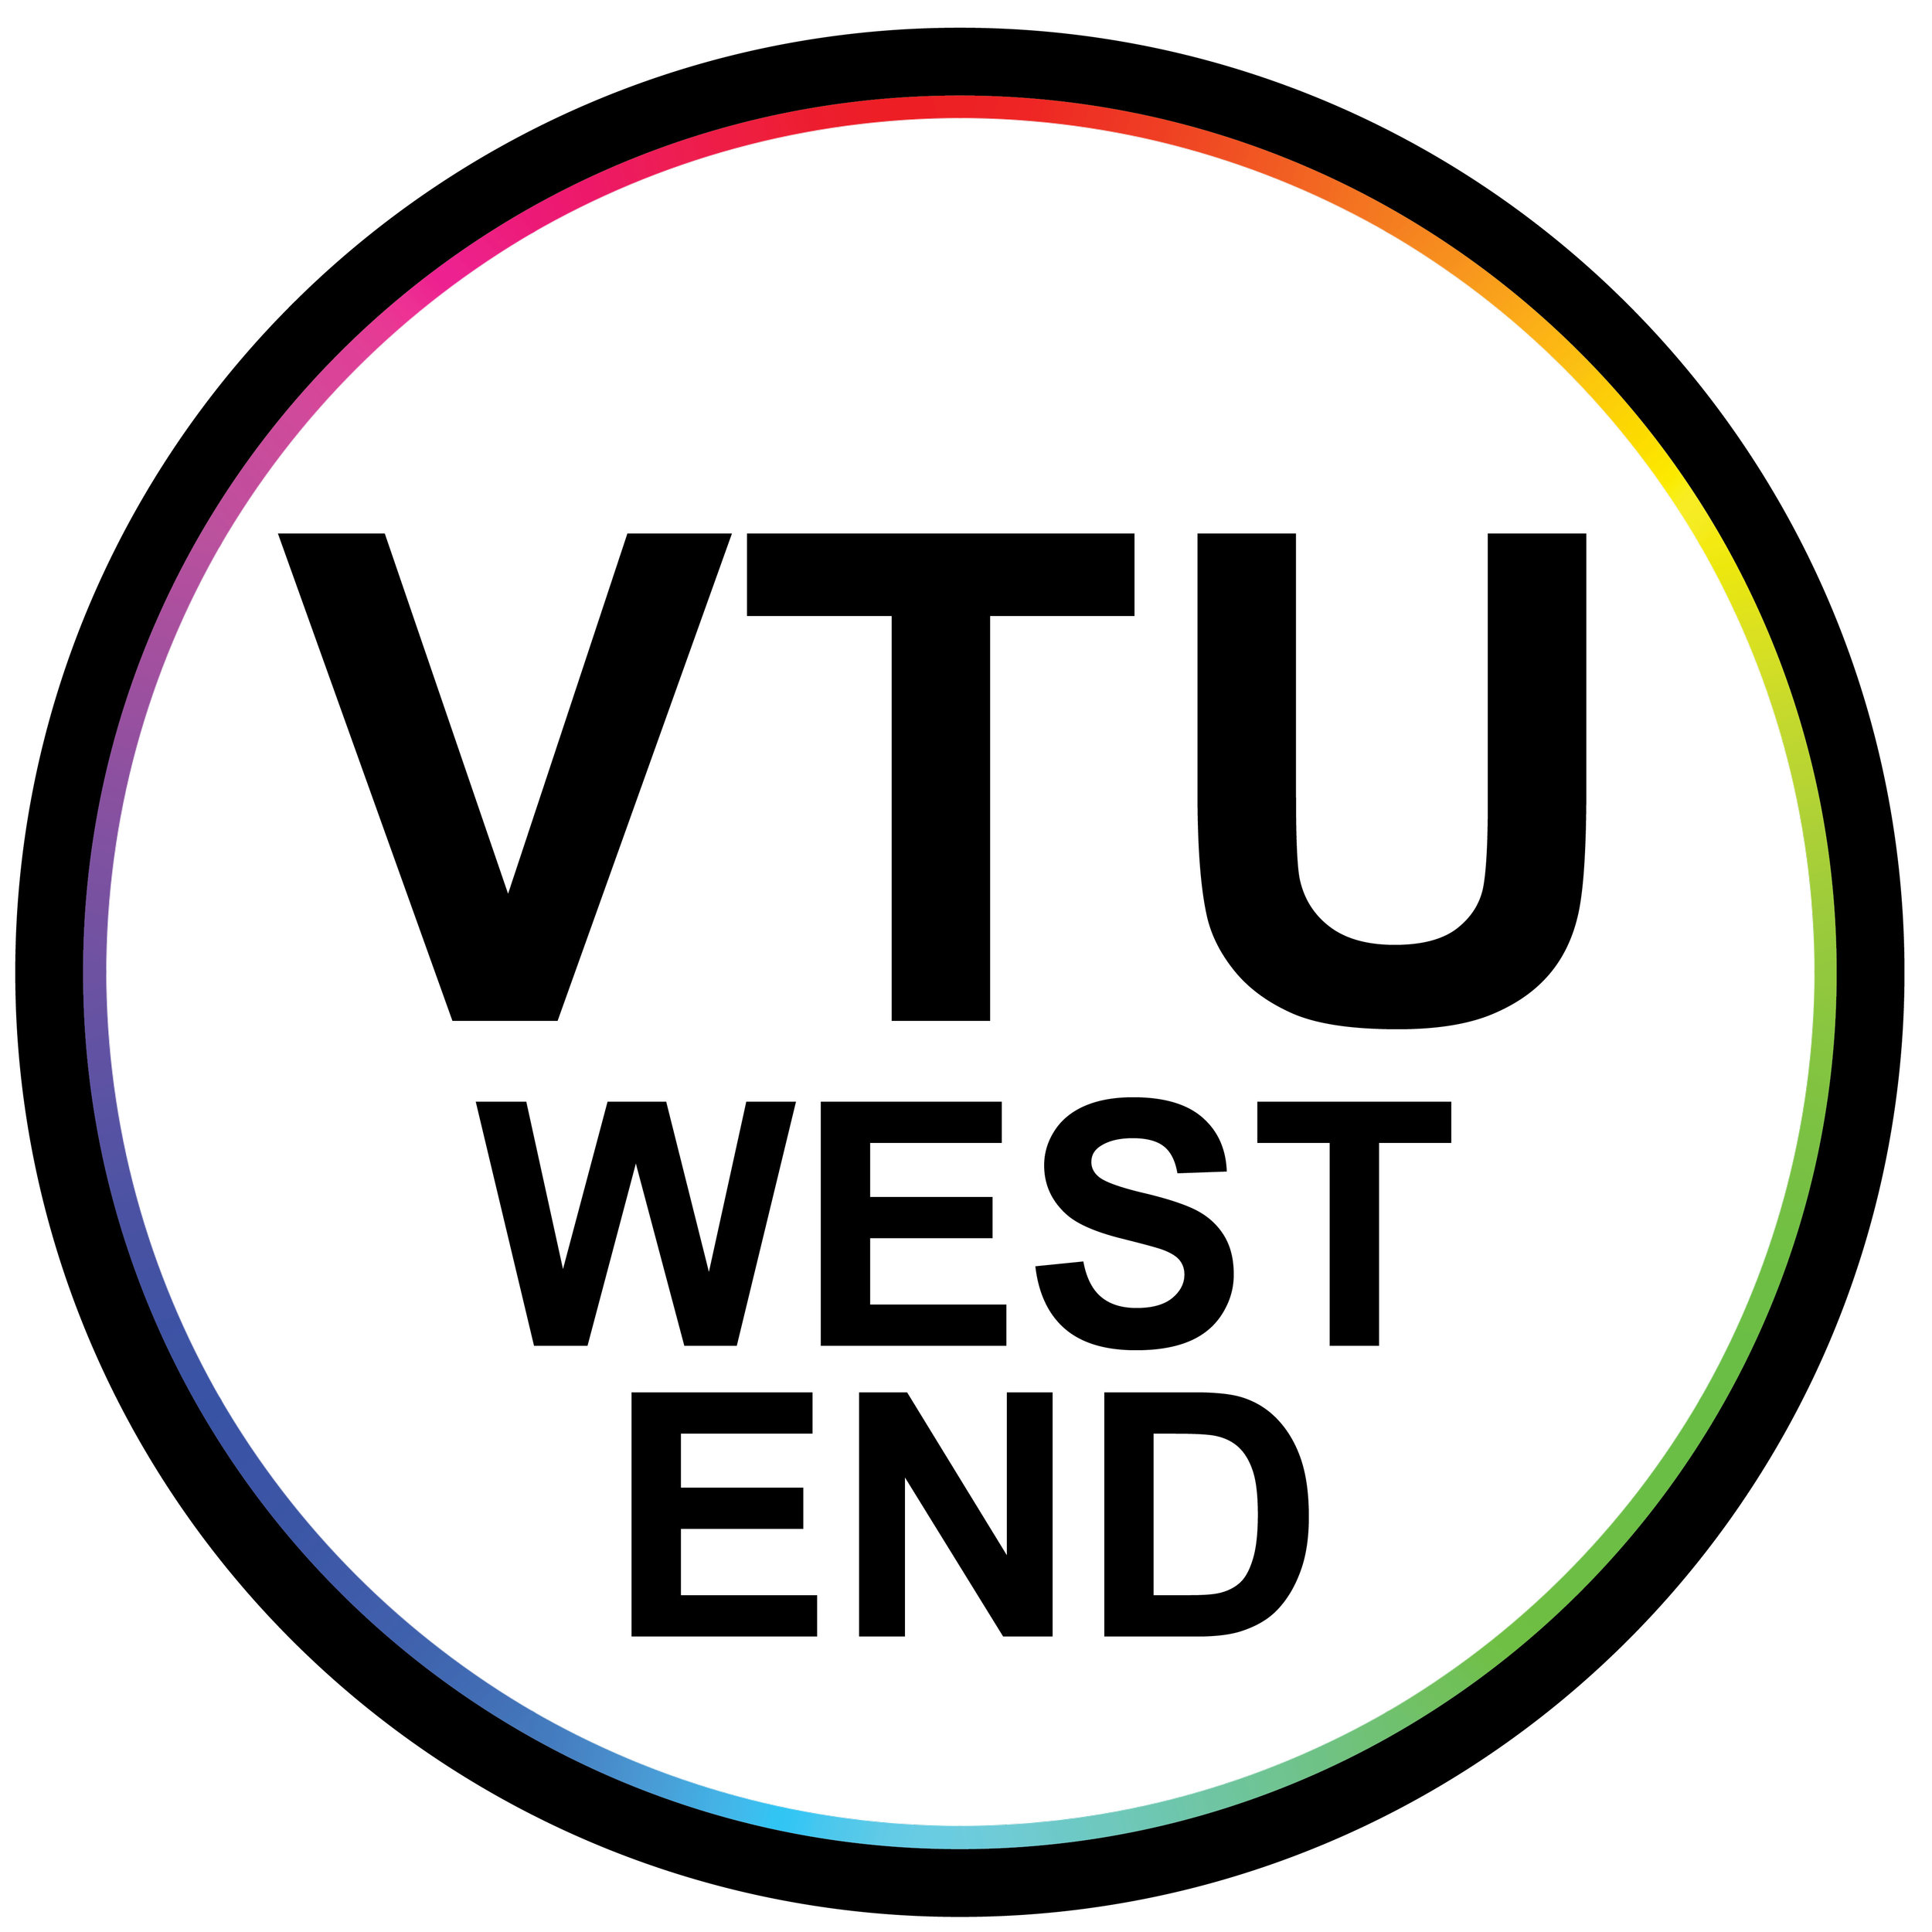 VTU West End.jpg